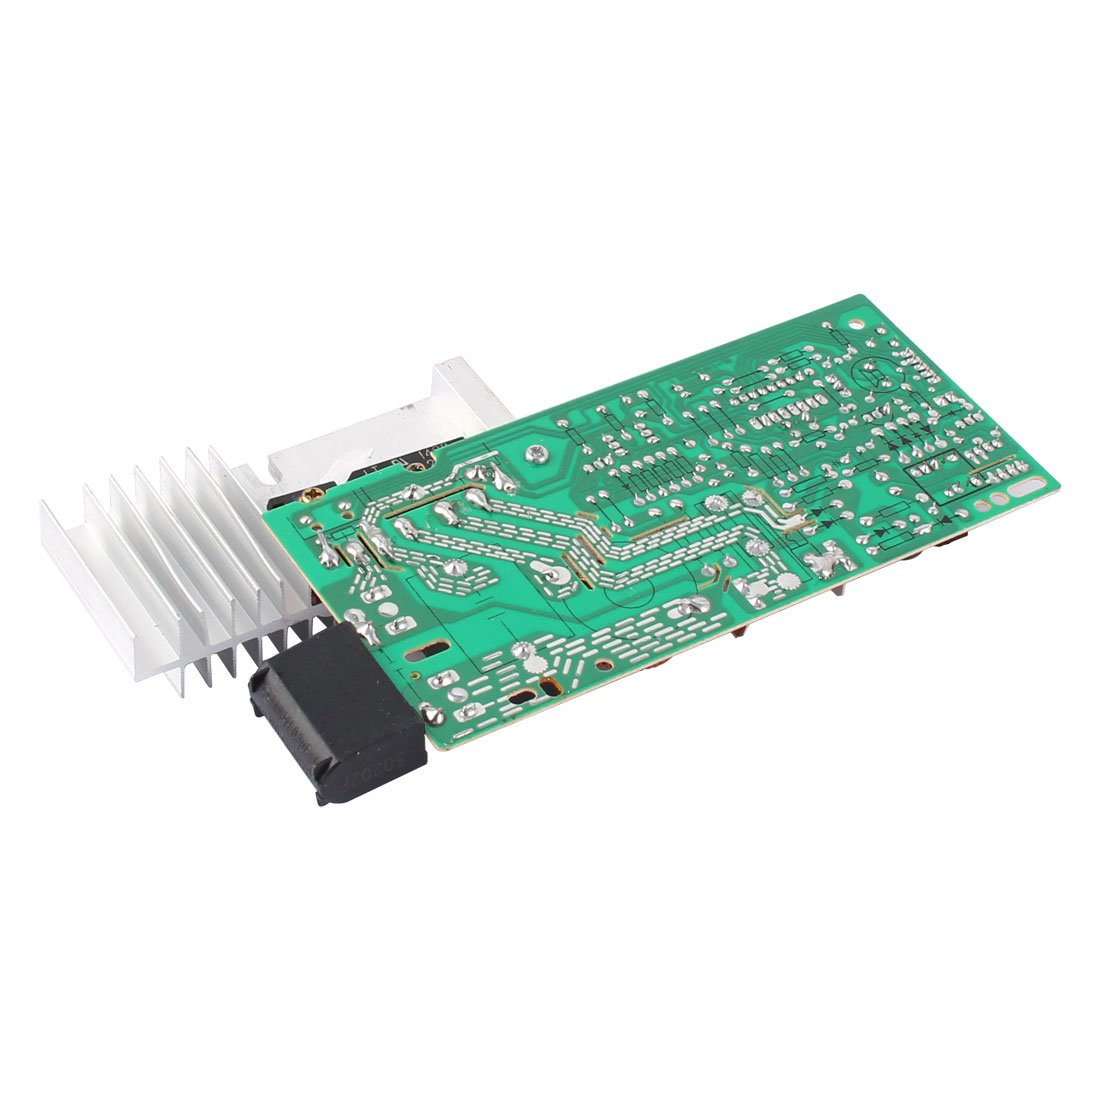 Buy Sellify Pcb Circuit Induction Cooker Controller Repairing Repair Diagram Wiring Schematic Replacement Part Board Online At Low Prices In India